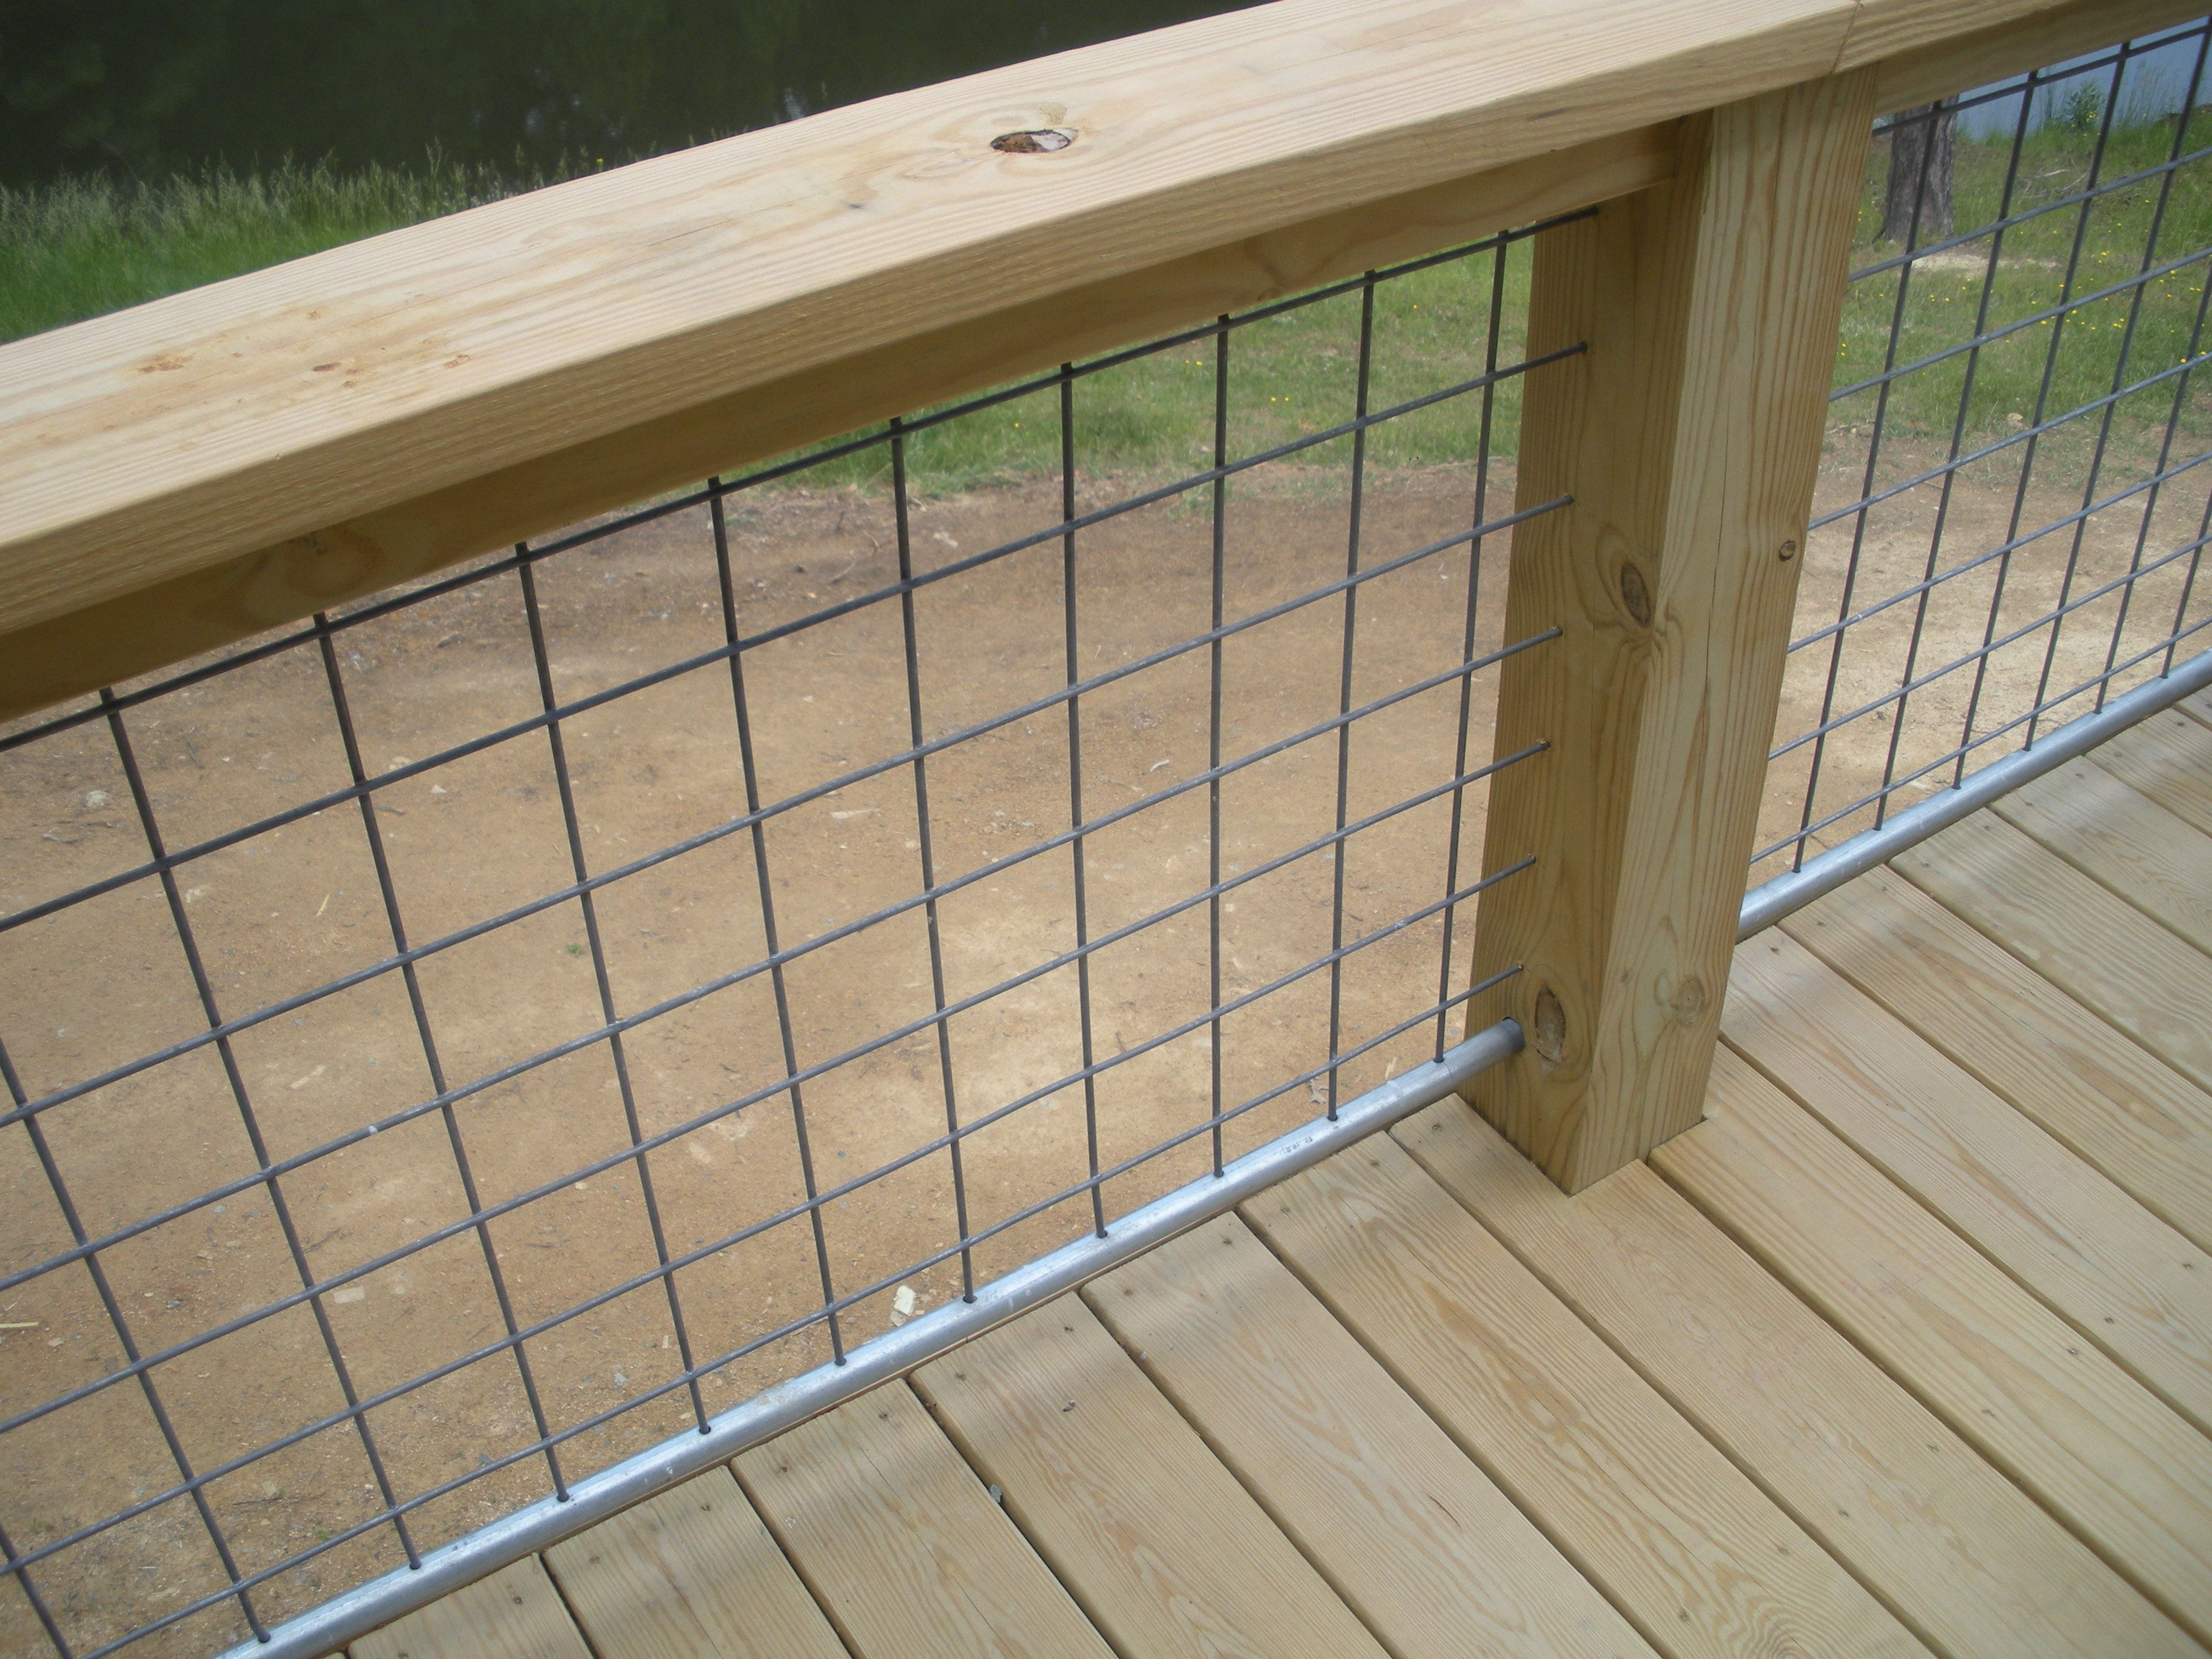 goat wire fencing as railings - Google Search | Stair ...